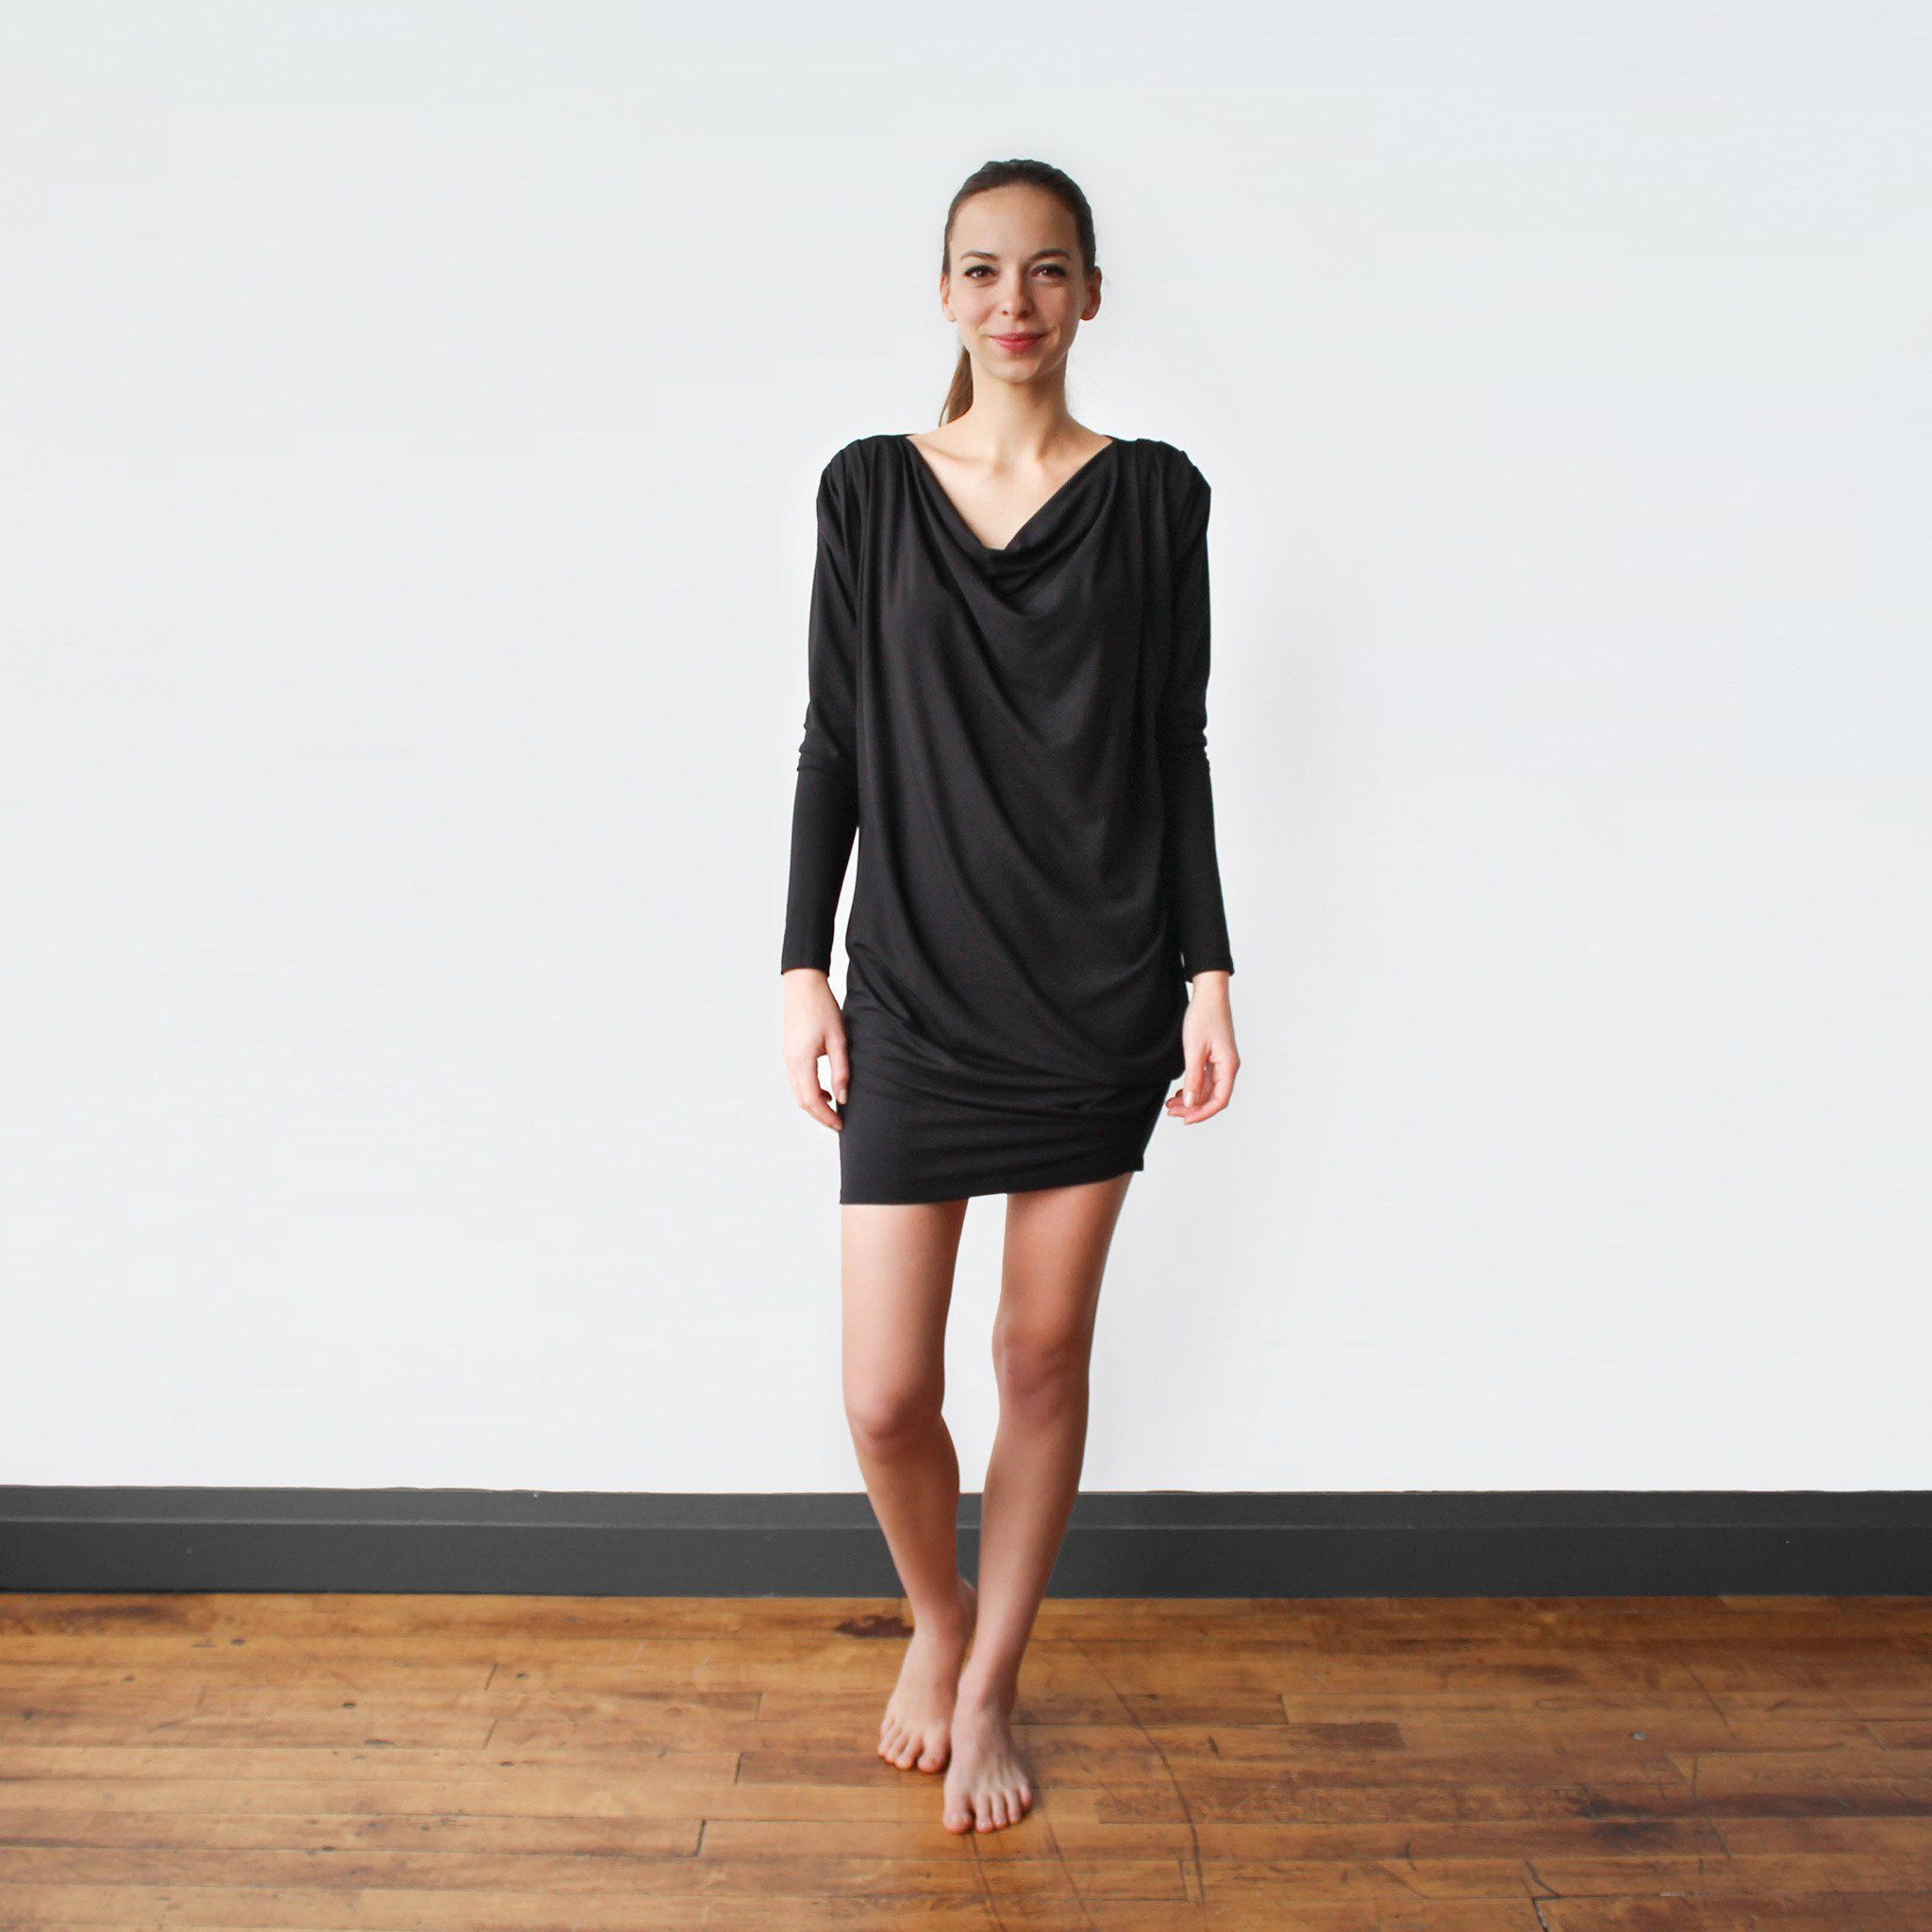 Minimalist Dress For The Everyday Traveler Ethically Made With Sustainable And Eco Friendly Materials Revolve Dresses Minimalist Dresses Practical Wardrobe 2.8 out of 5 stars from 18 genuine reviews on australia's largest opinion running my own clothing brand it scares me to have revolve as competitors. pinterest